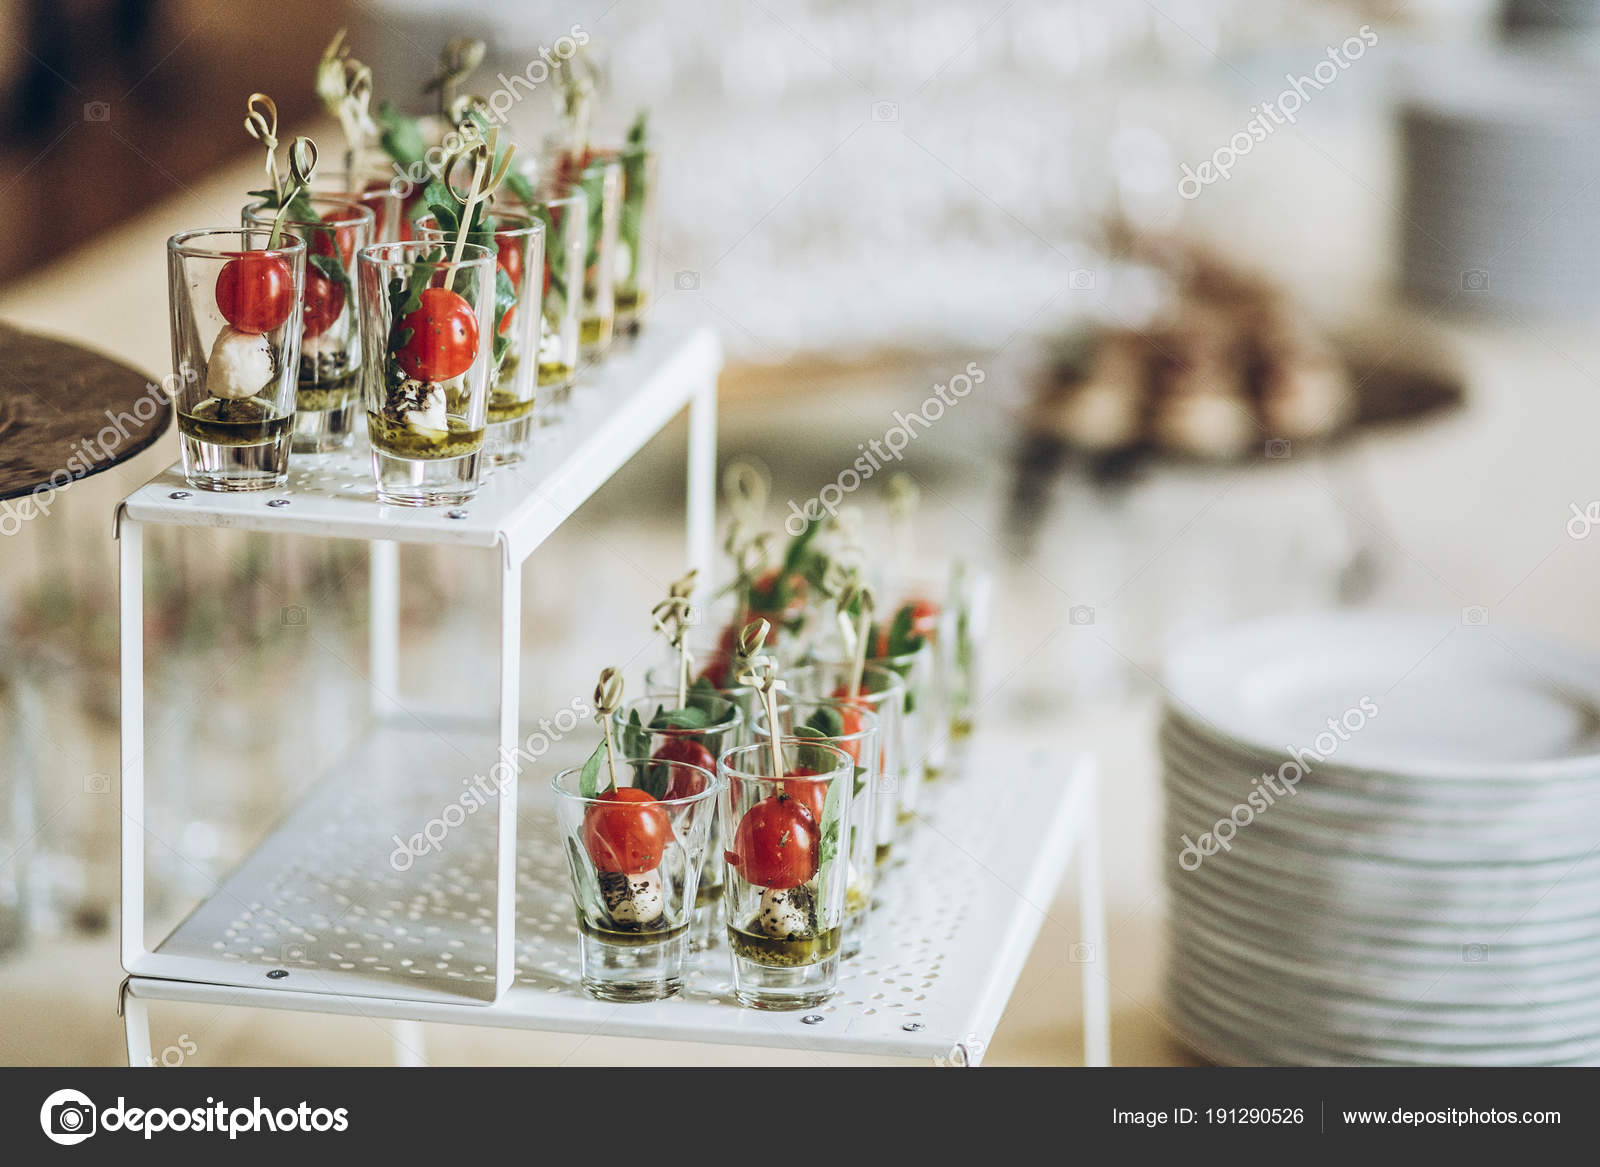 Delicious Appetizers Starters Tomatoes Cheese Glass Plate Table